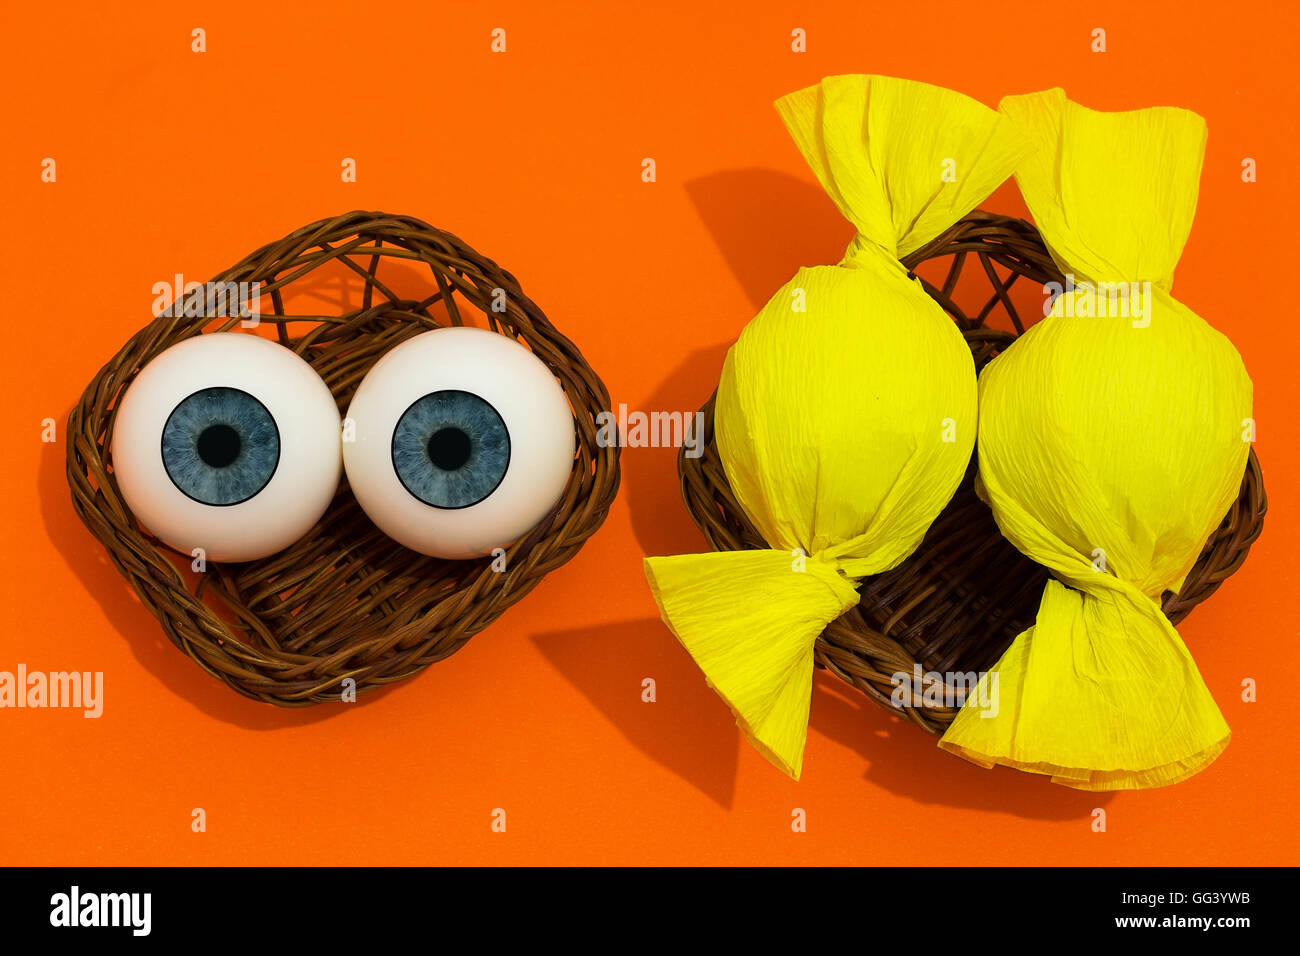 Halloween 2020 Funnyscene Halloween. funny scene with two eyeballs and other two wrapped as